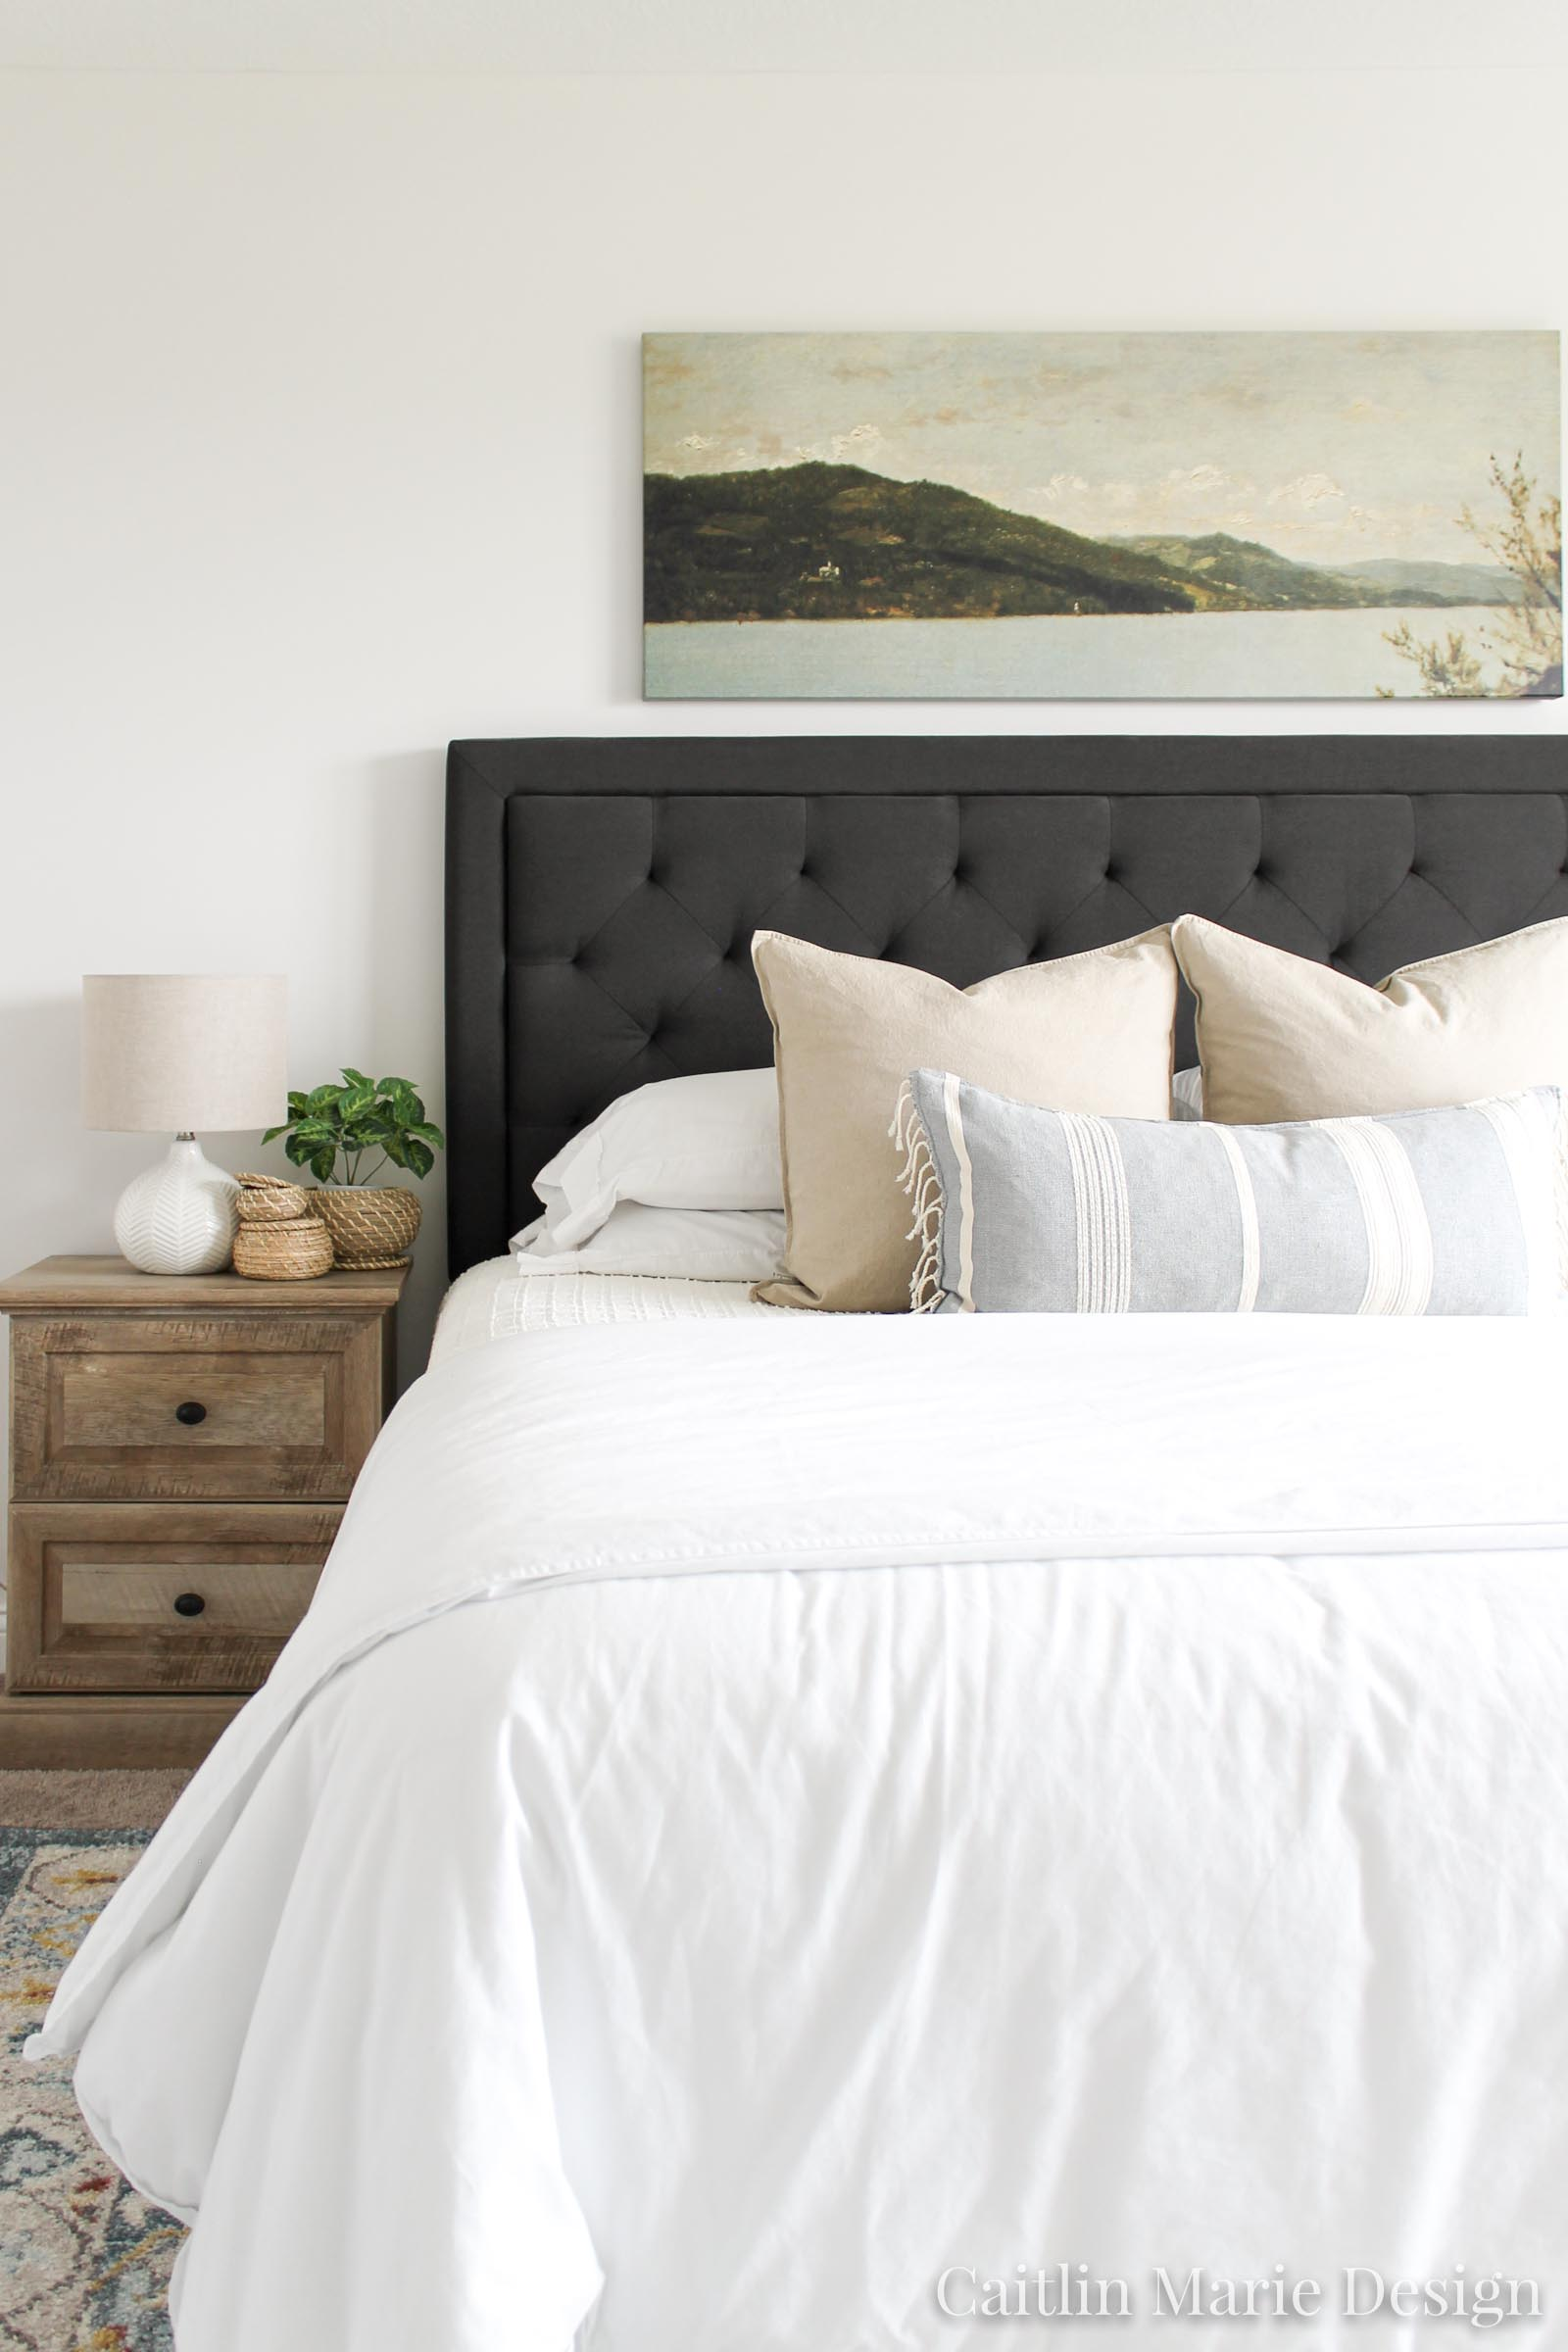 Interior Photography Tips for Designers and Bloggers | charcoal upholstered headboard, wide art above the bed, modern bedroom